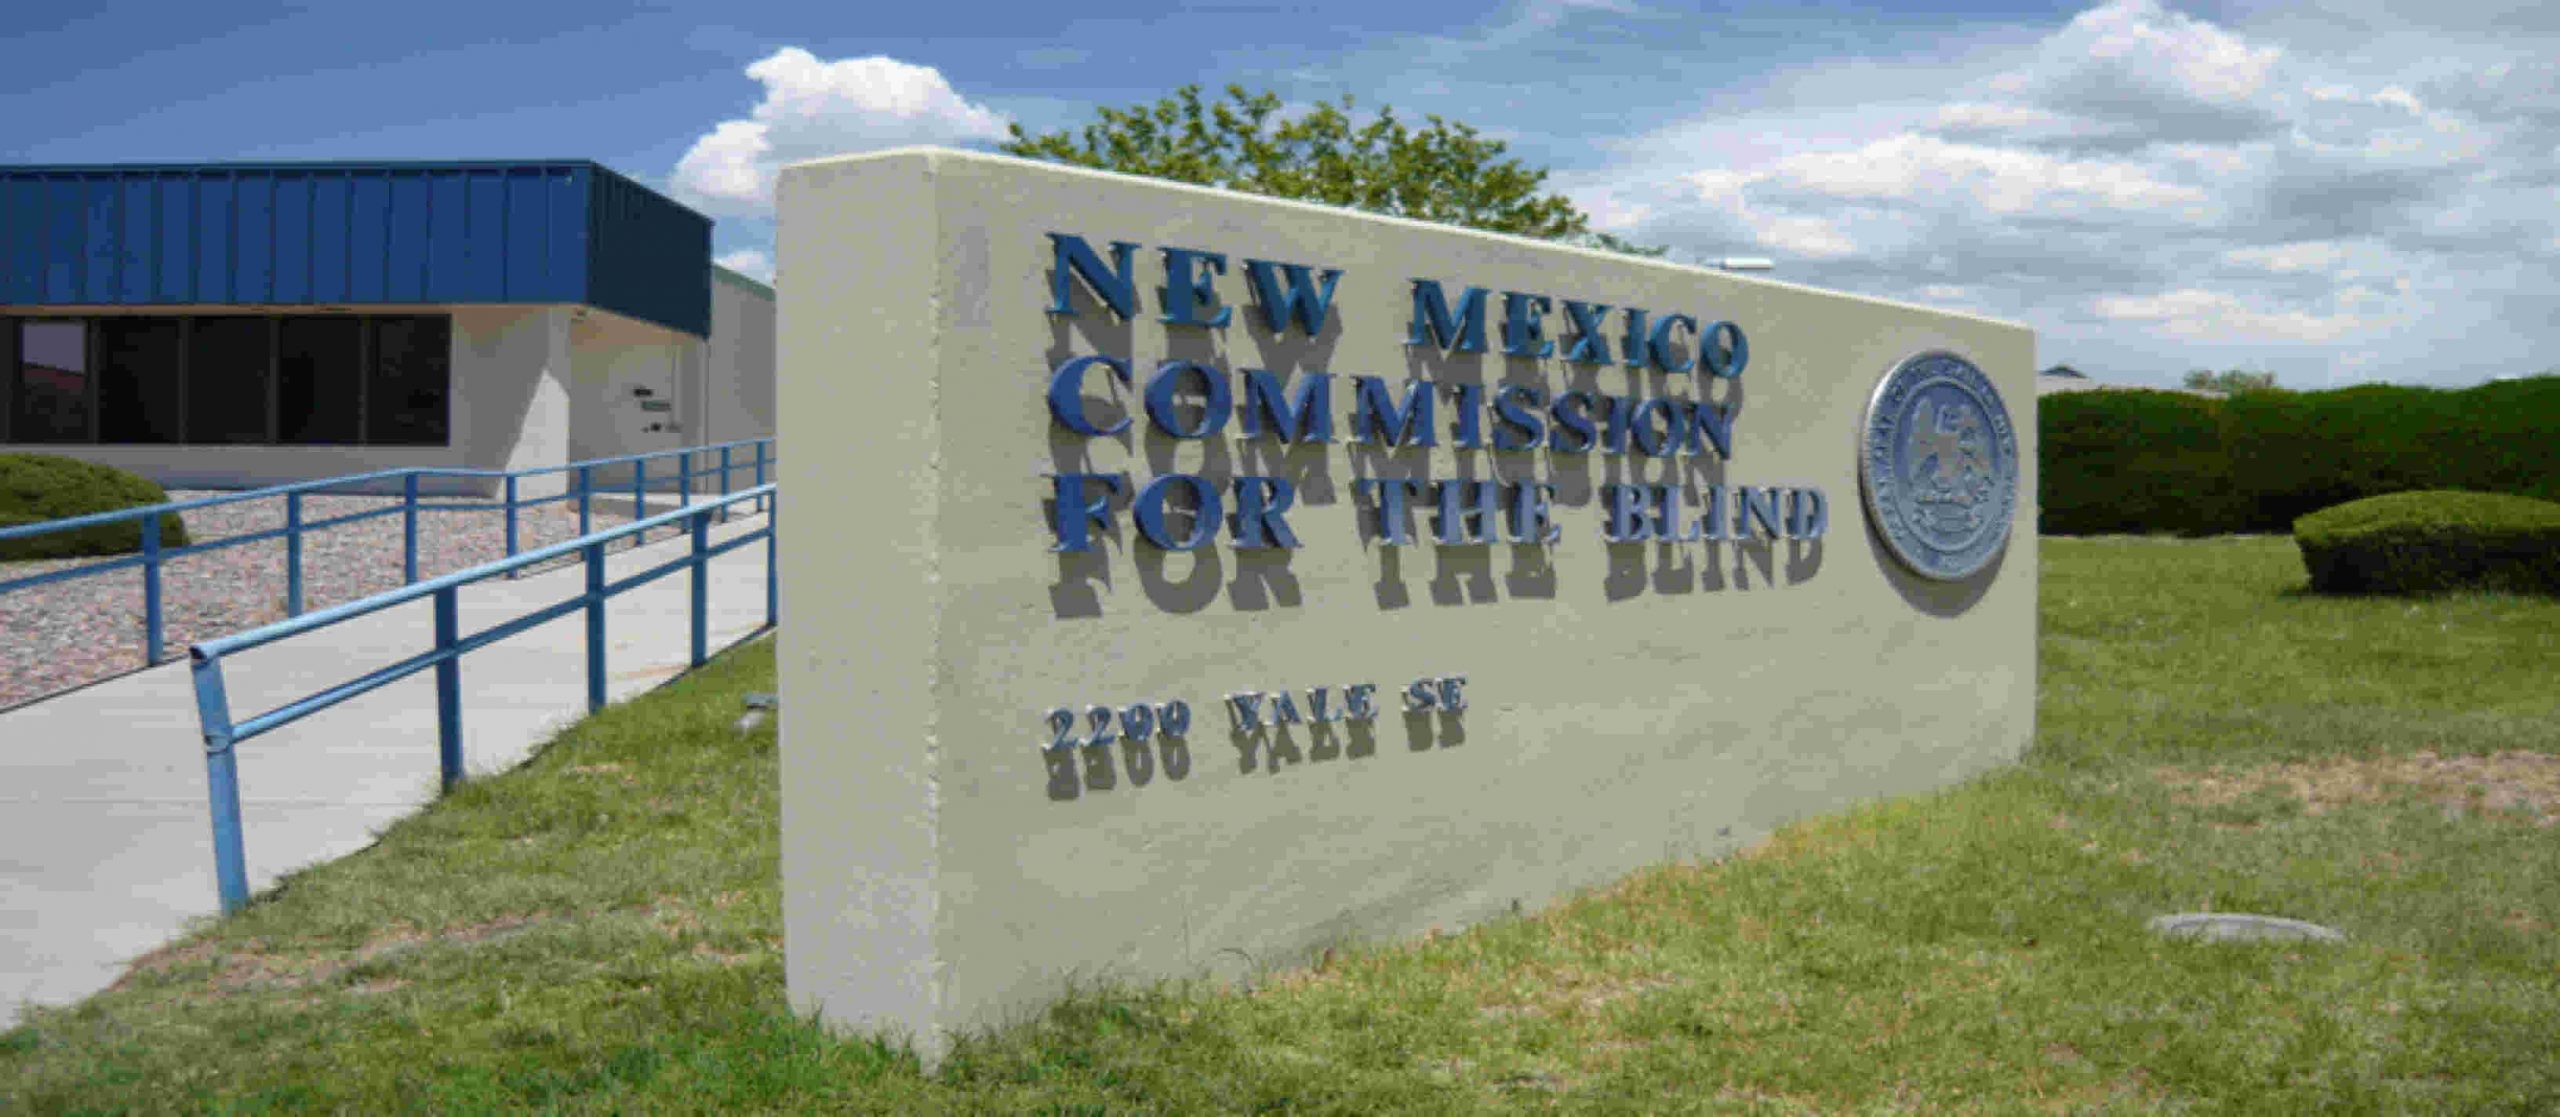 new mexico commission for the blind sign